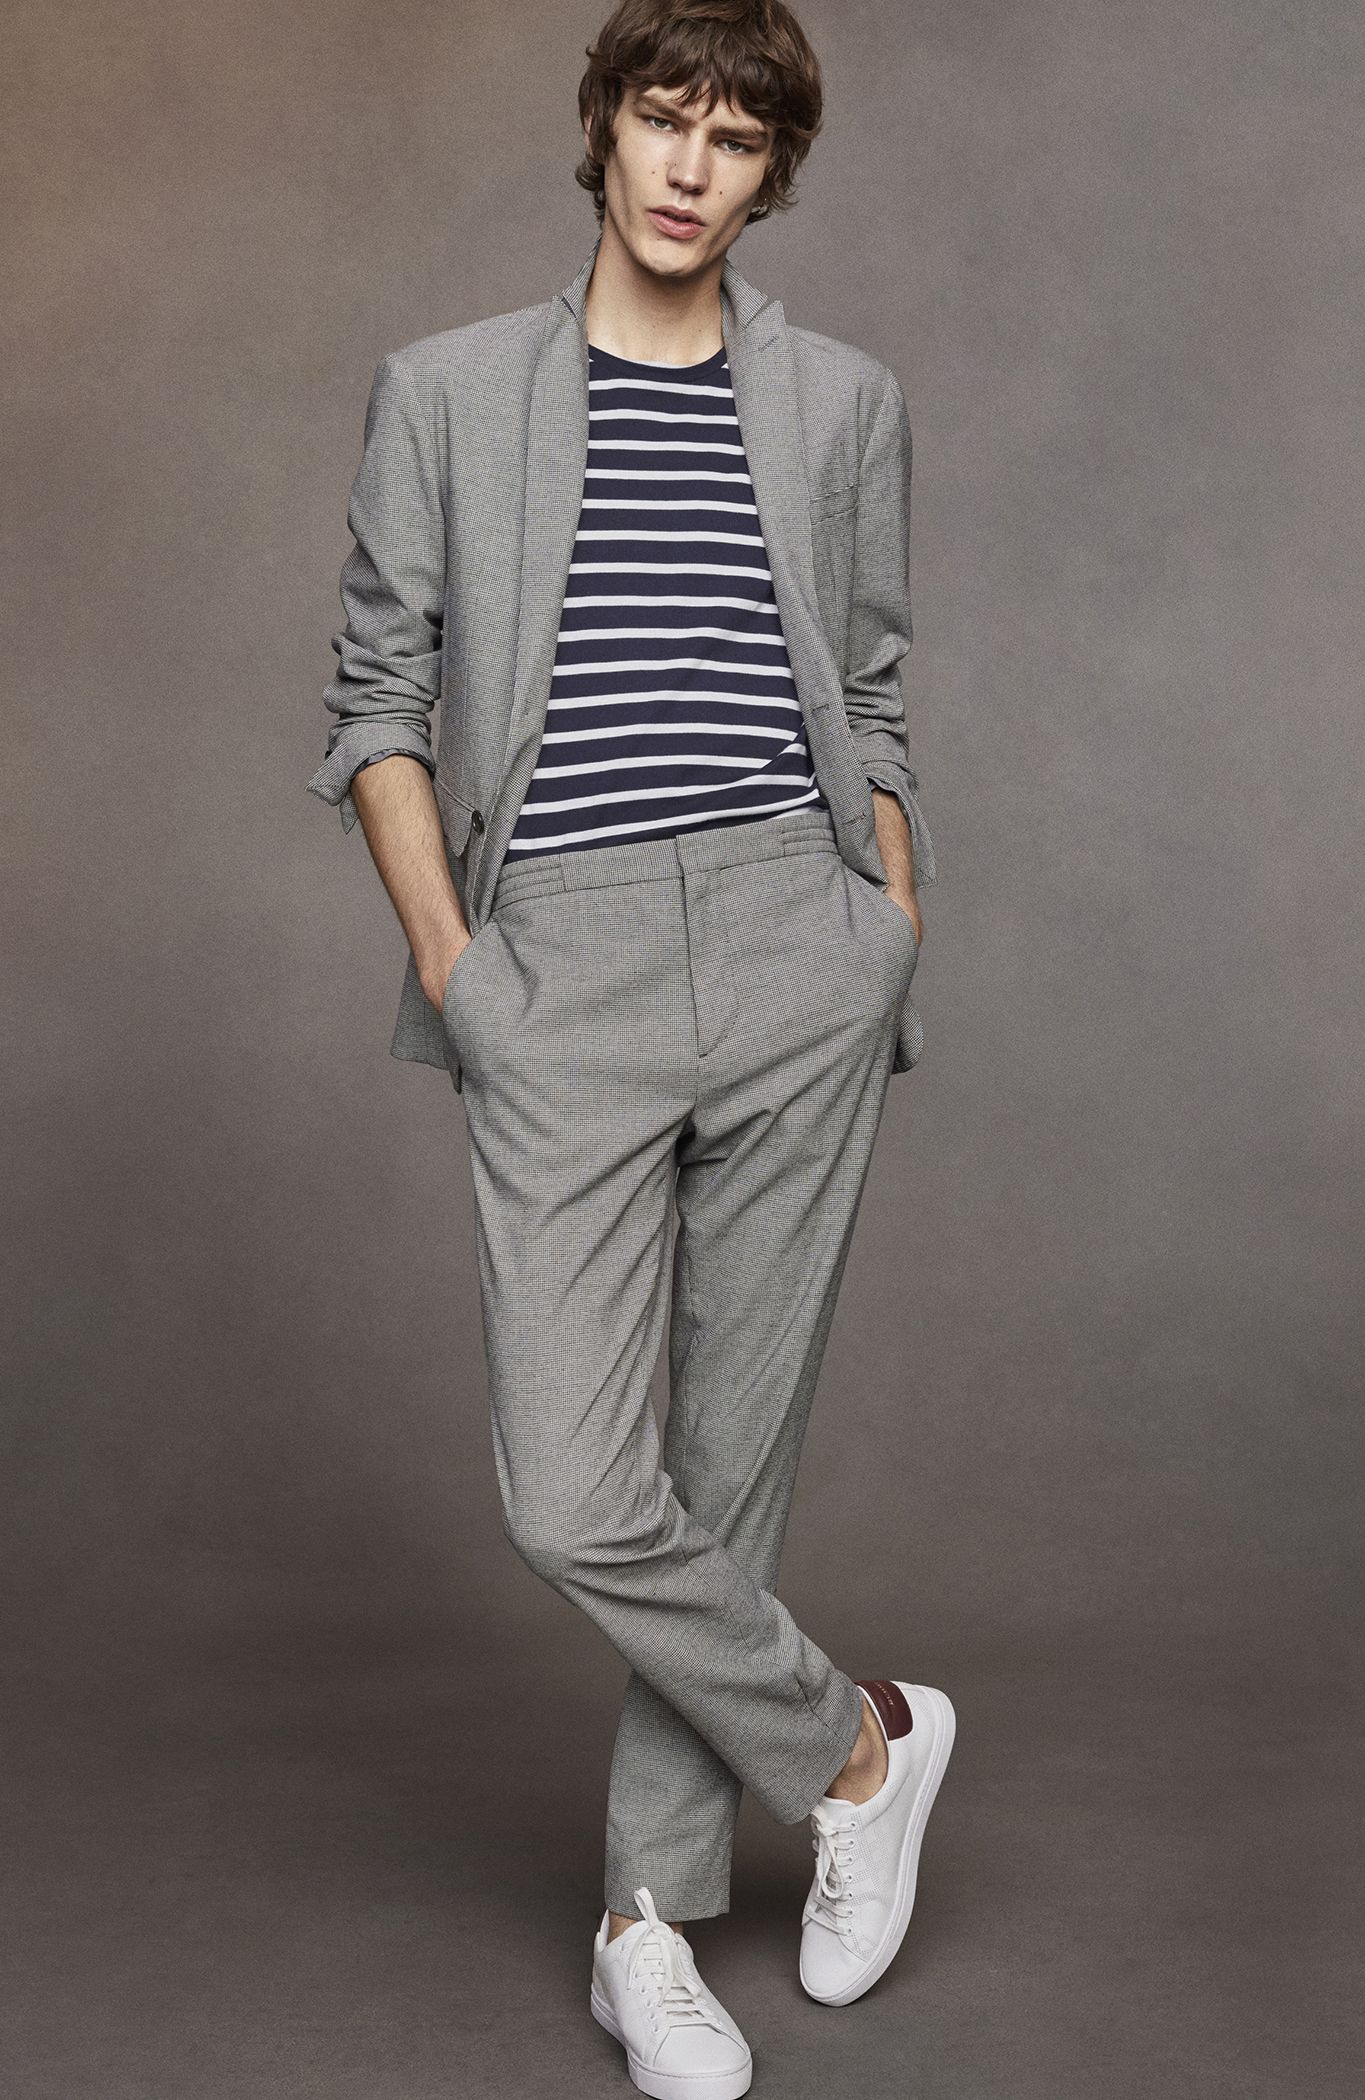 a5329a3943 A tailored modern-fit blazer and trousers in an Italian-woven cotton wool  blend with a micro houndstooth pattern. Blurring the lines between smart  and ...